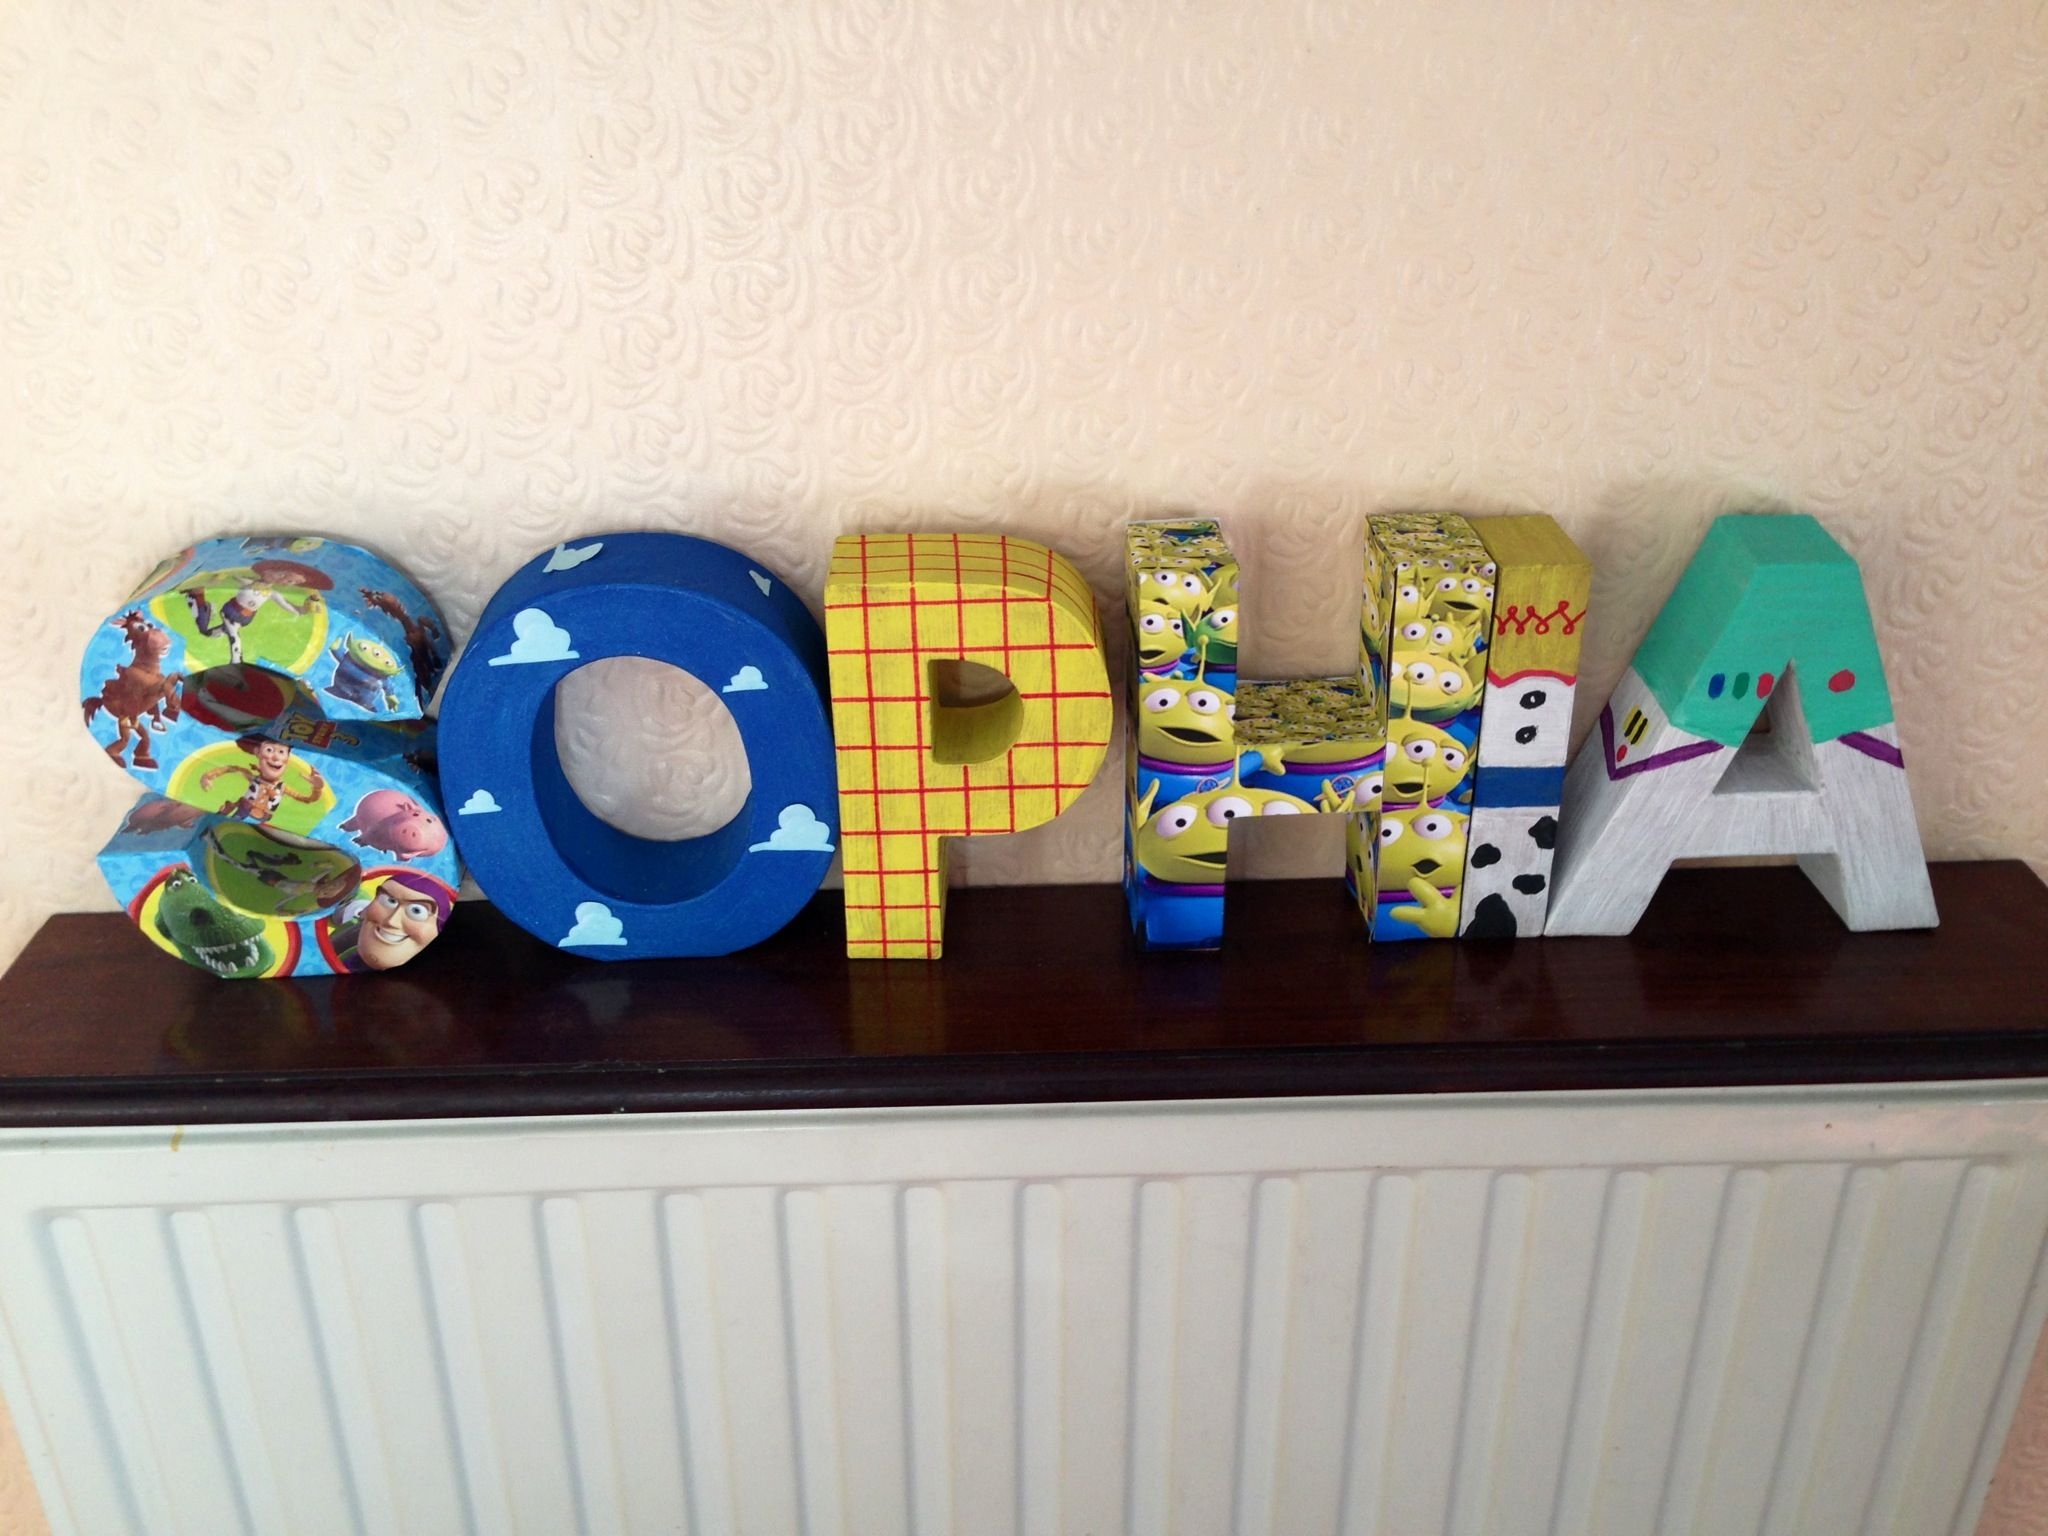 Toy story letters | Some day | Toy story bedroom, Toy story room